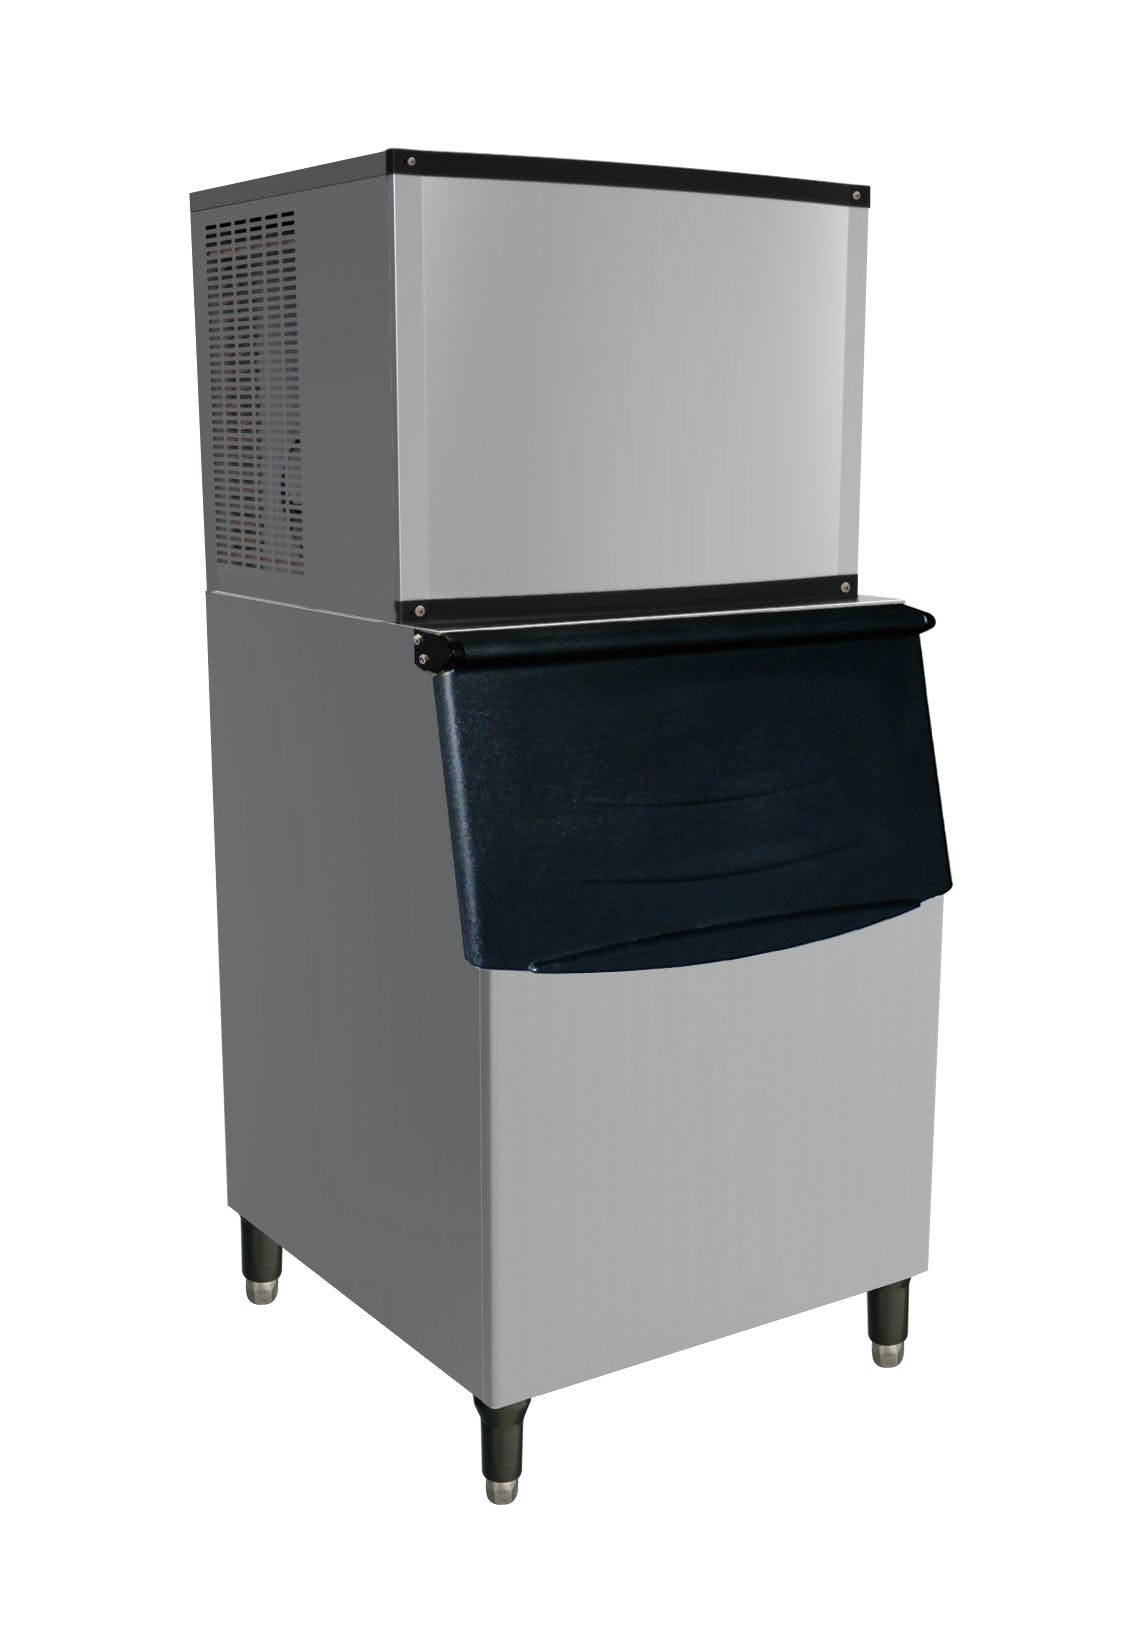 Valpro VPIM420 - 420 lbs. Full Cube Ice Maker - Air Cooled - 244 lbs. Ice Bin Included